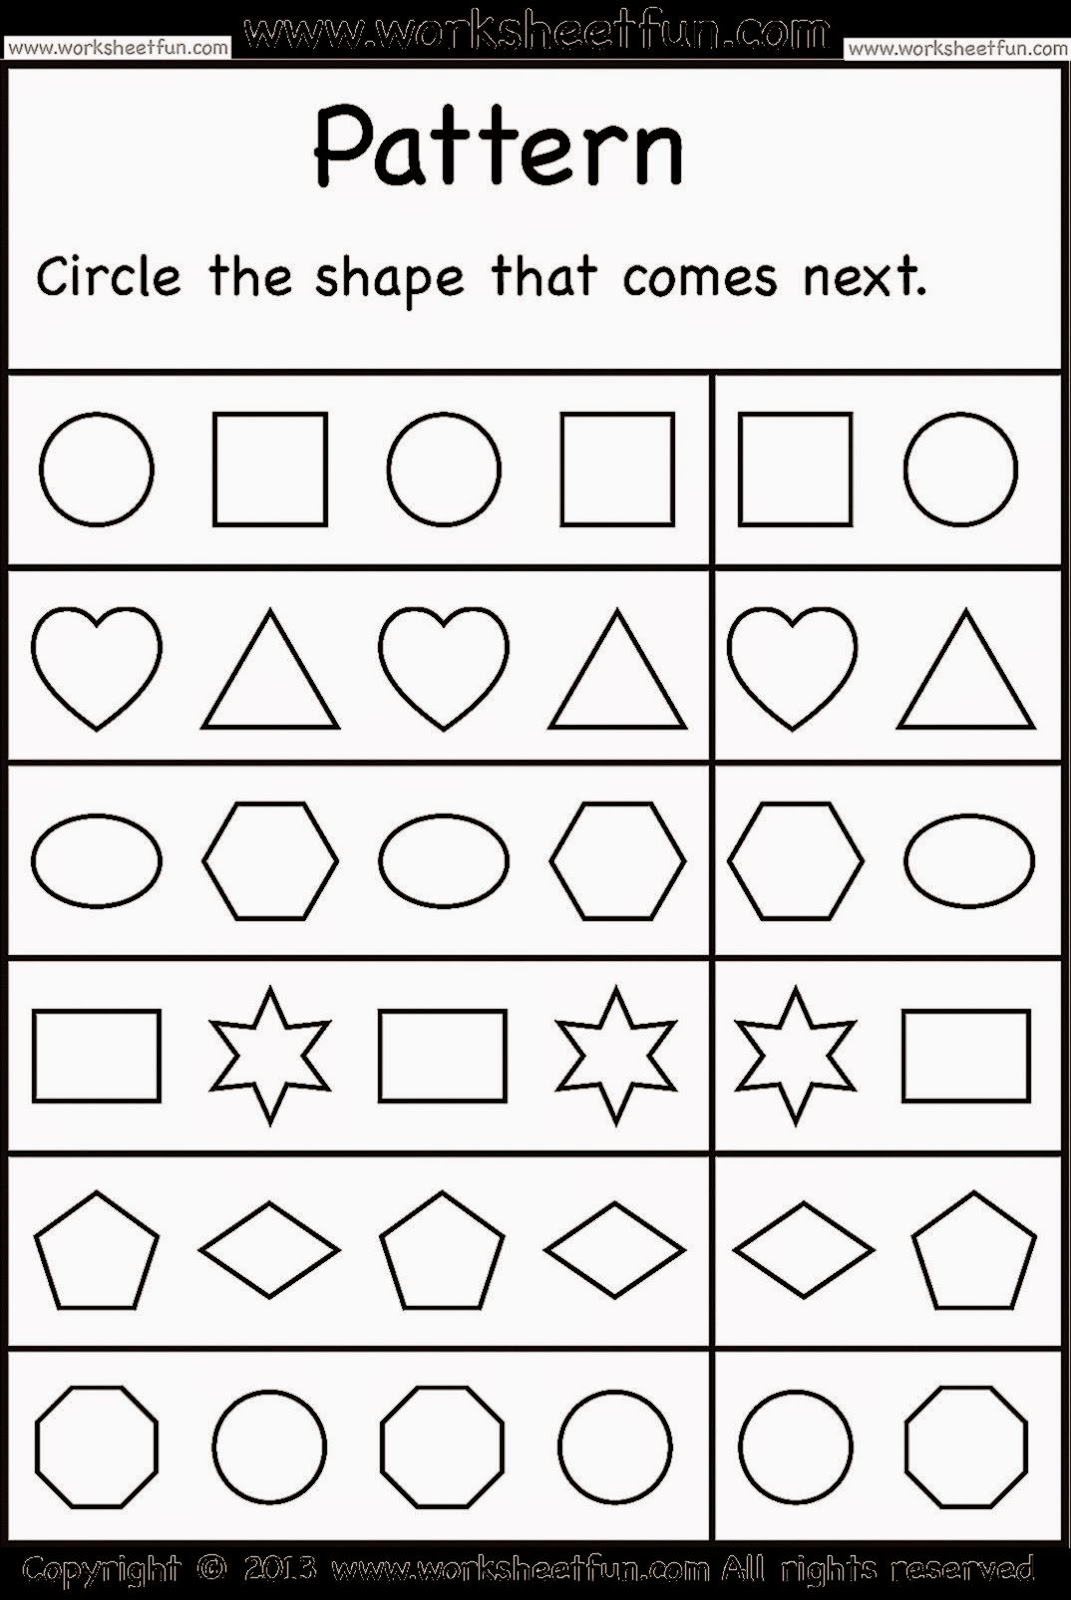 5 Images of Worksheets Printable Kindergarten Activities